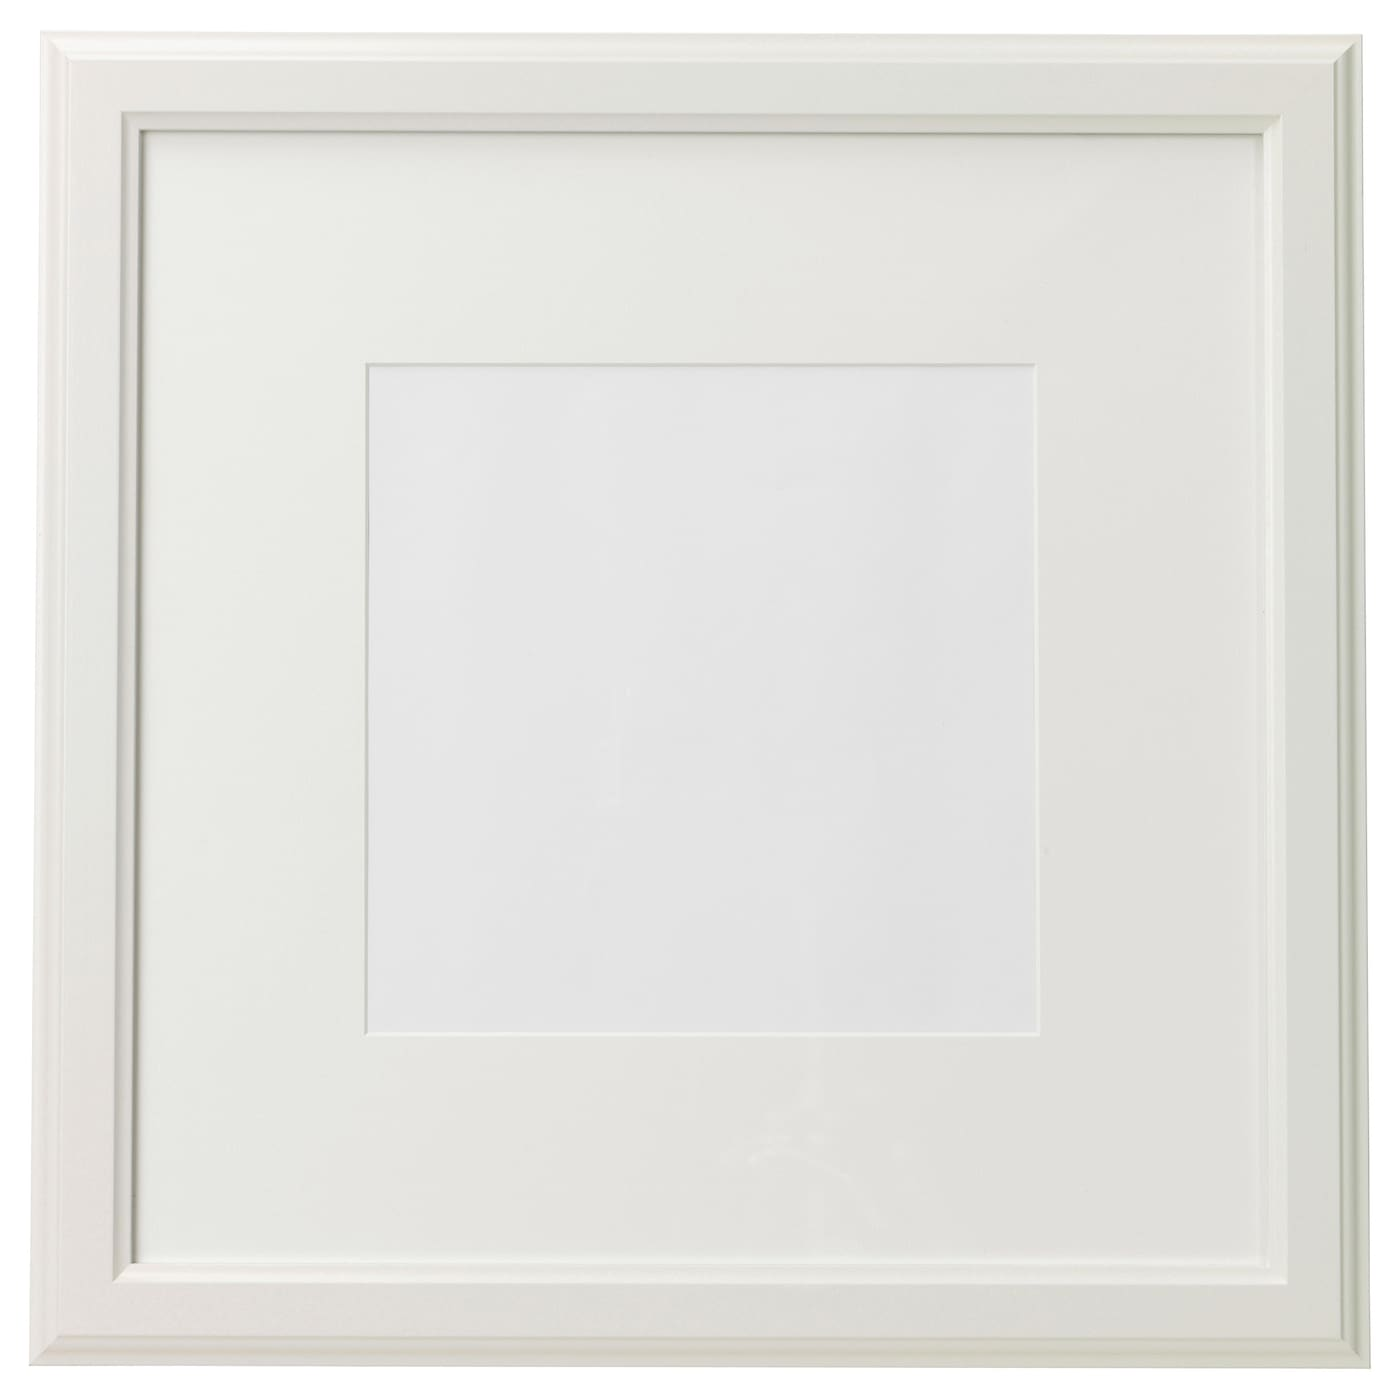 Wooden Picture FramesWhite Photo Frames456710 inch